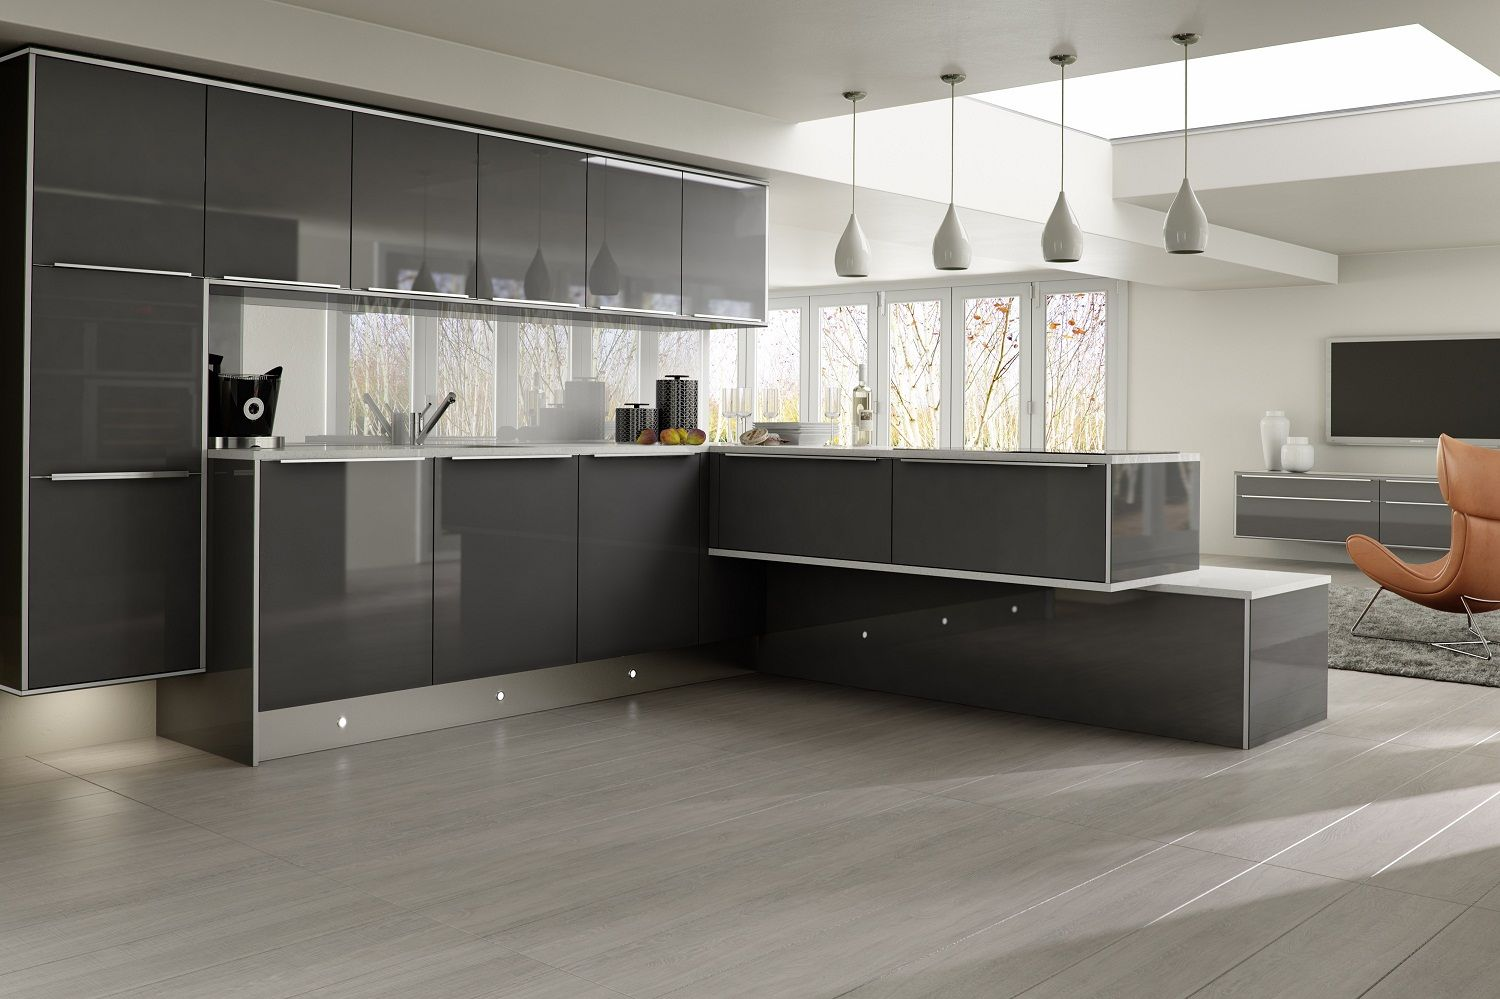 Grey kitchen modern kitchen london by lwk kitchens london - Get Stylish Range Of Fitted Kitchen Service In London At Sky Kitchens And Bedroom We Design Supply Fit All Sorts Of Kitchen Fittings In Middlesex